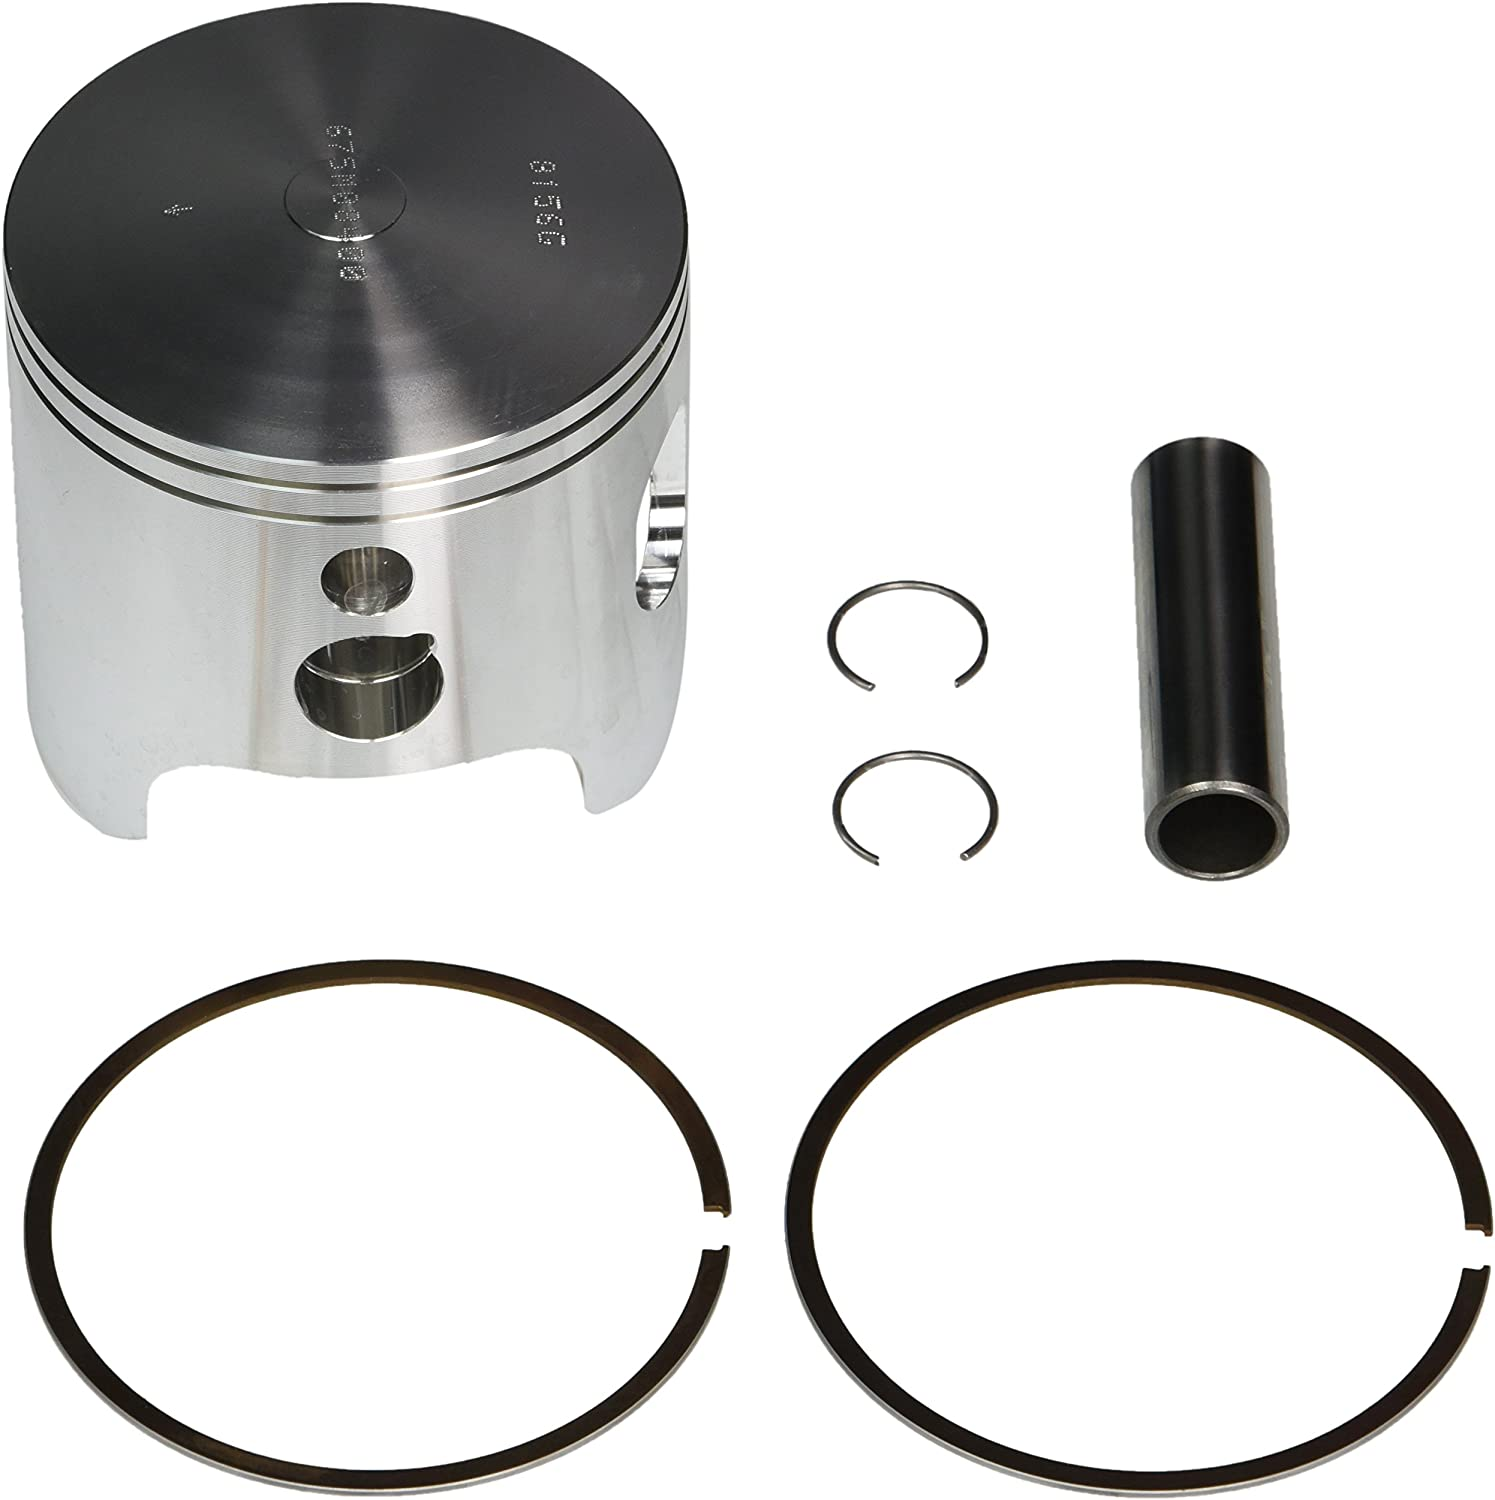 Top End Kit Standard Bore 83.00mm For 1994 Polaris 400L 4x4 ATVs